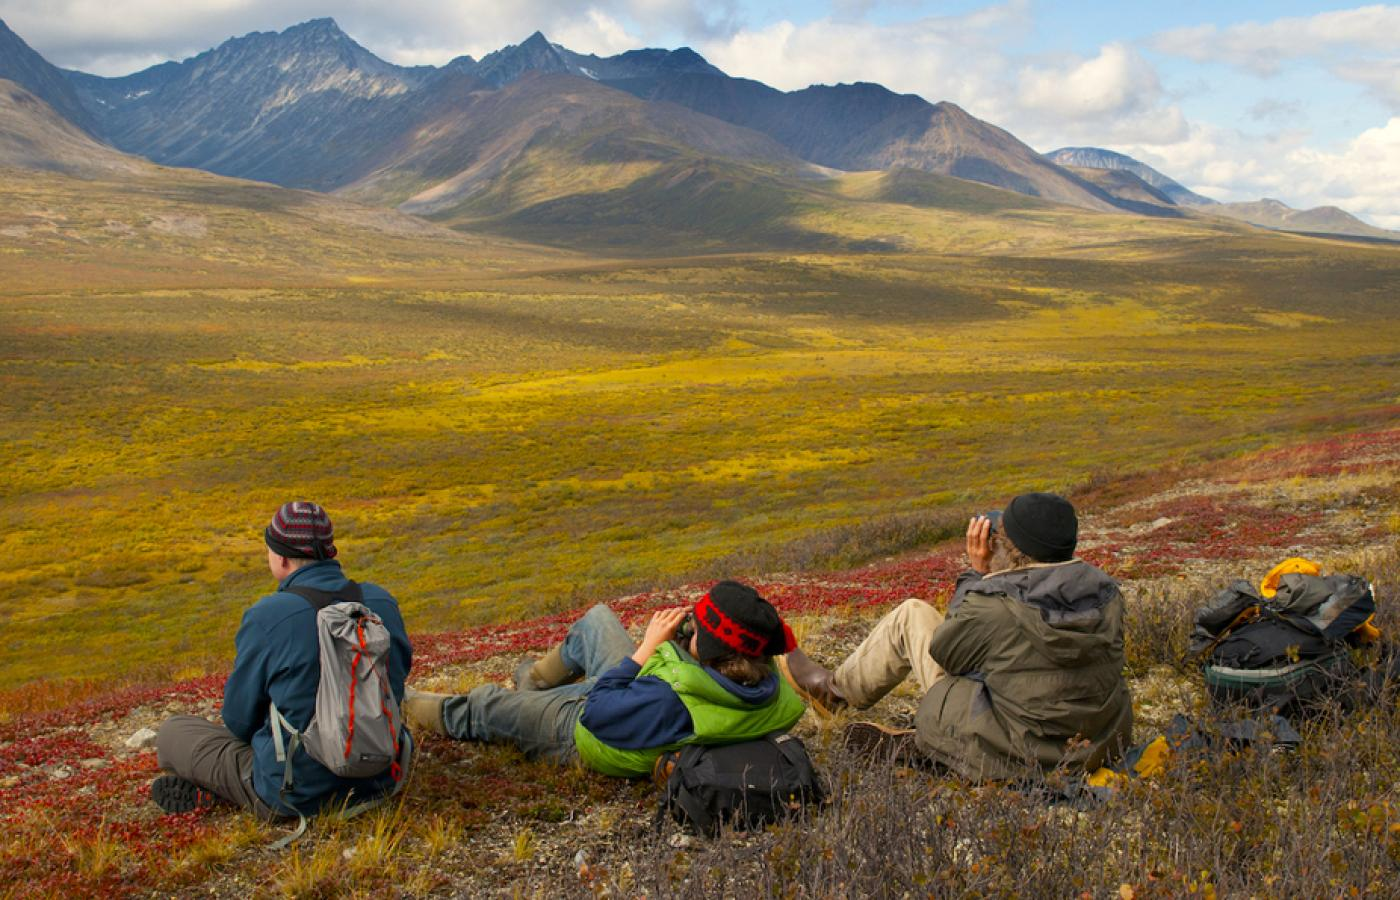 The views and wildlife and history along the Canol Trail, in Canada's Northwest Territories, make it a photographer's paradise